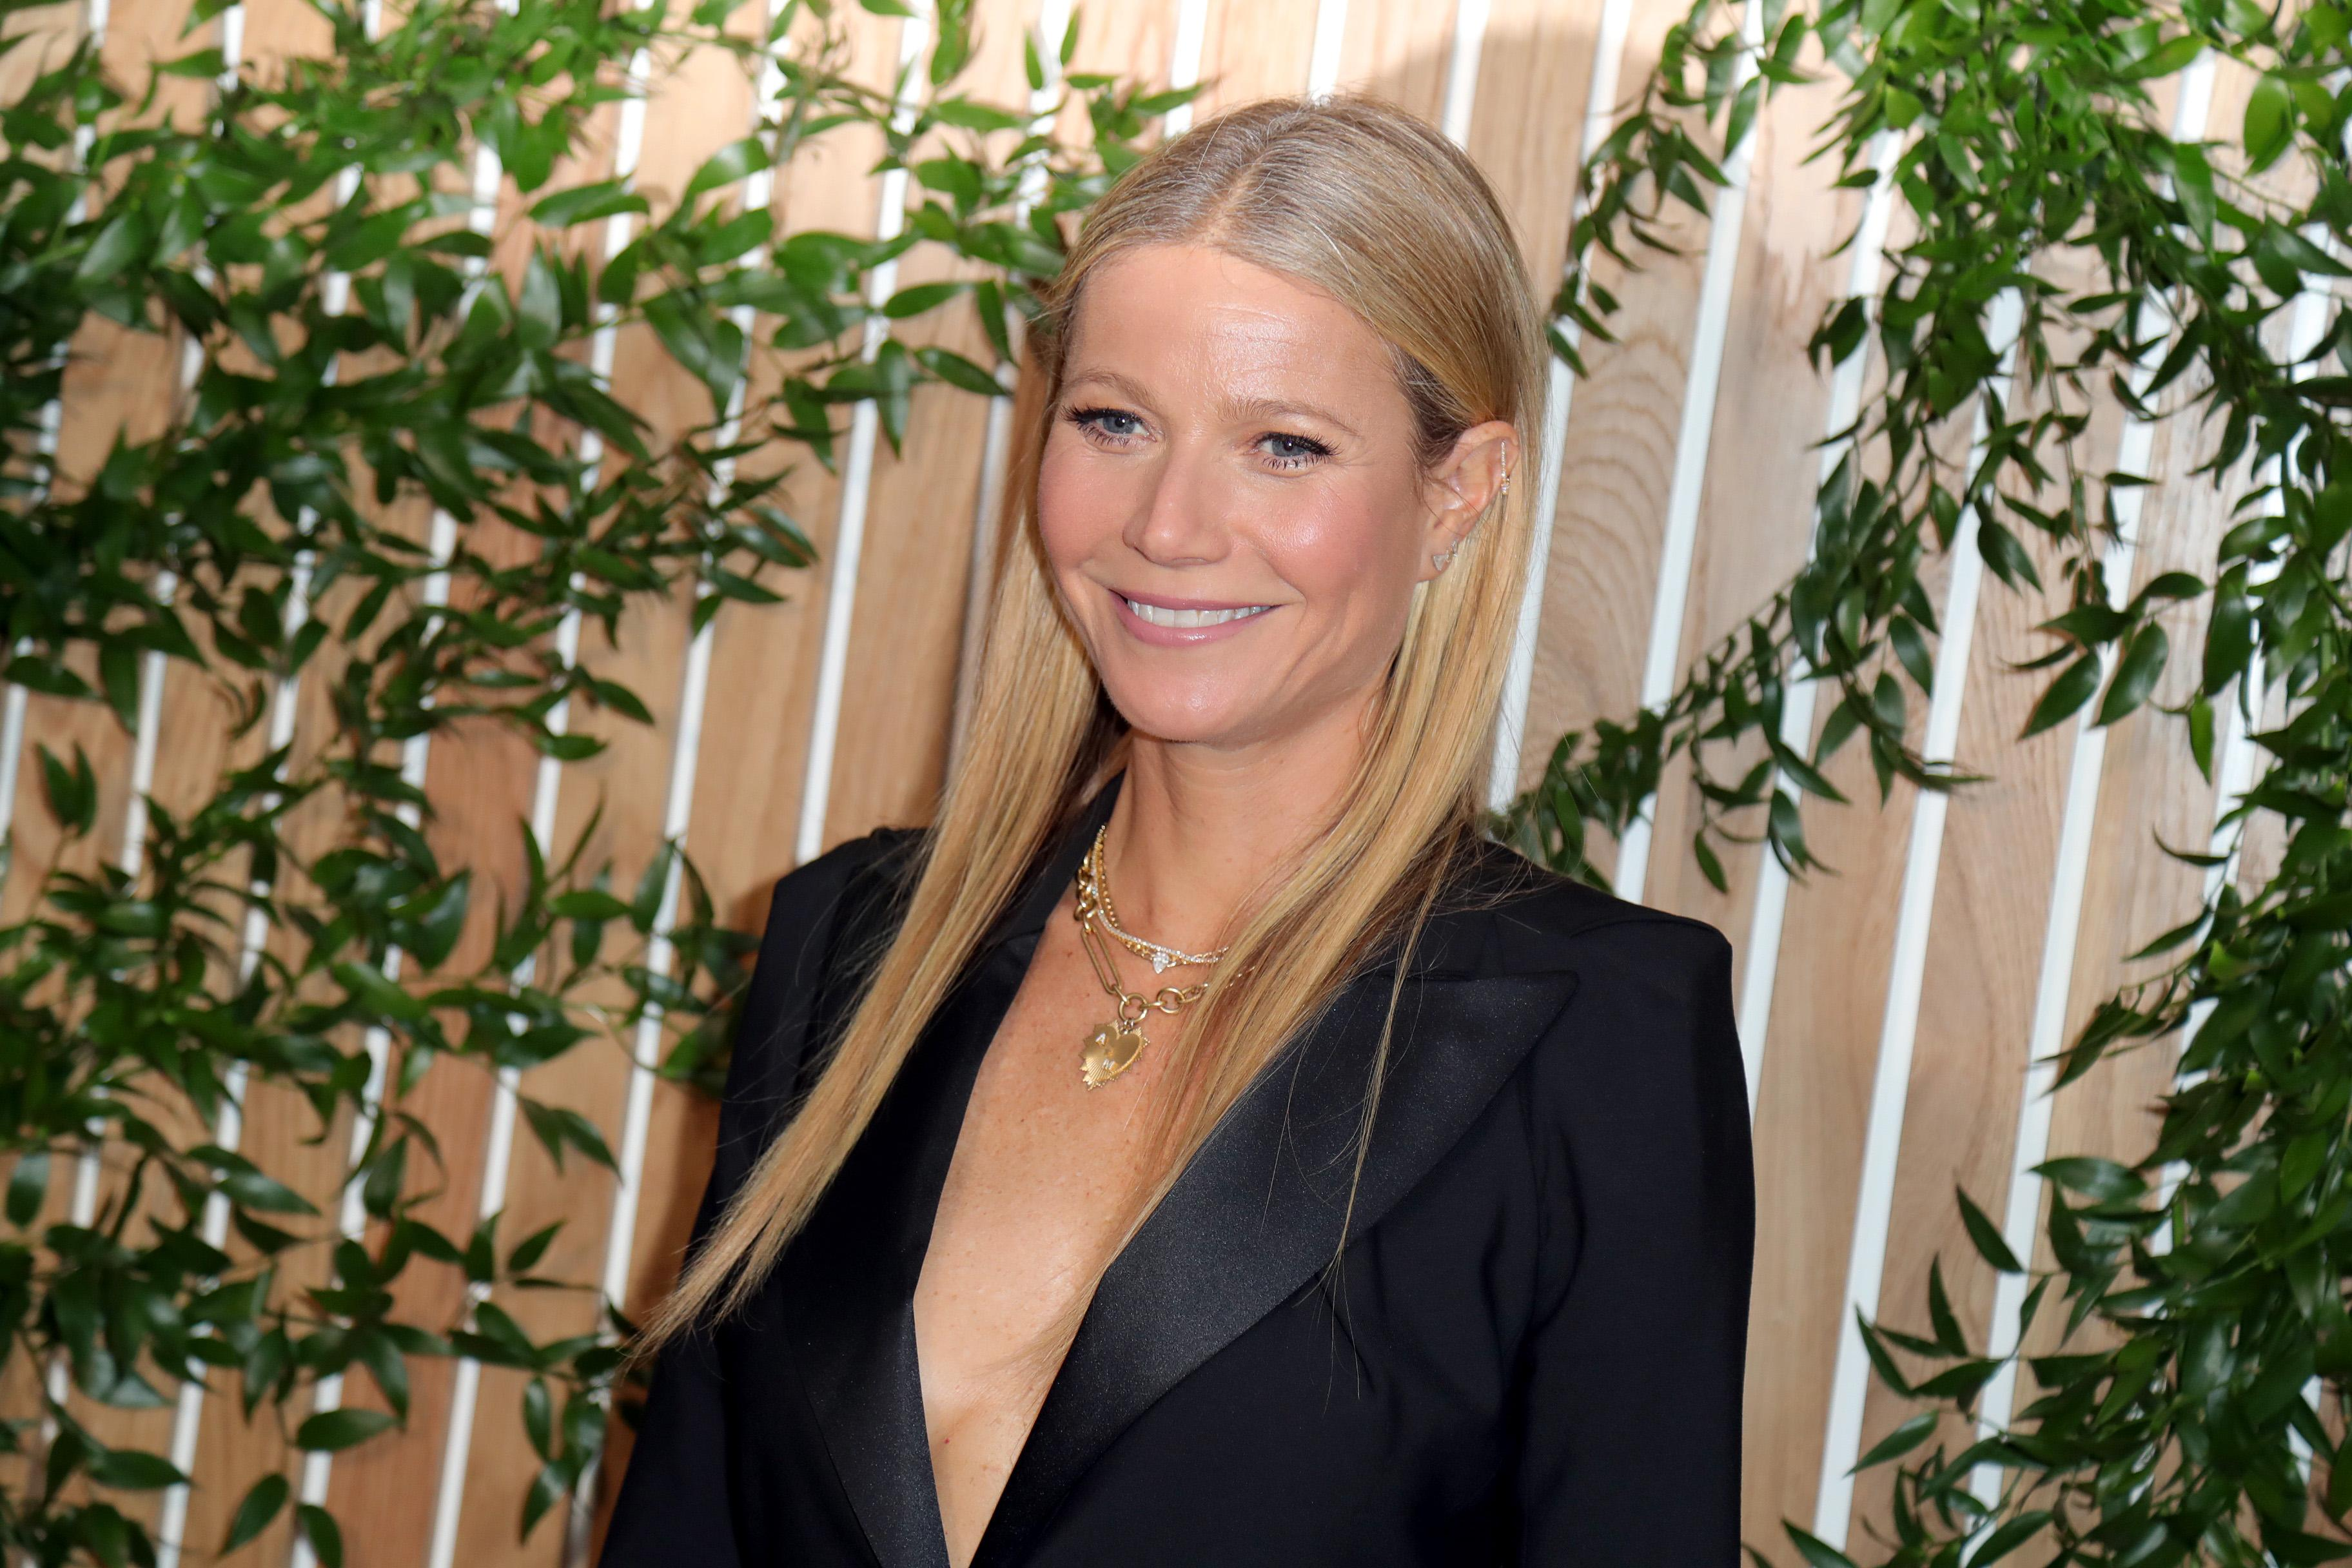 WEST HOLLYWOOD, CALIFORNIA - NOVEMBER 05: Gwyneth Paltrow attends the 1 Hotel West Hollywood Grand Opening Event at 1 Hotel West Hollywood on November 05, 2019 in West Hollywood, California. (Photo by Leon Bennett/Getty Images)